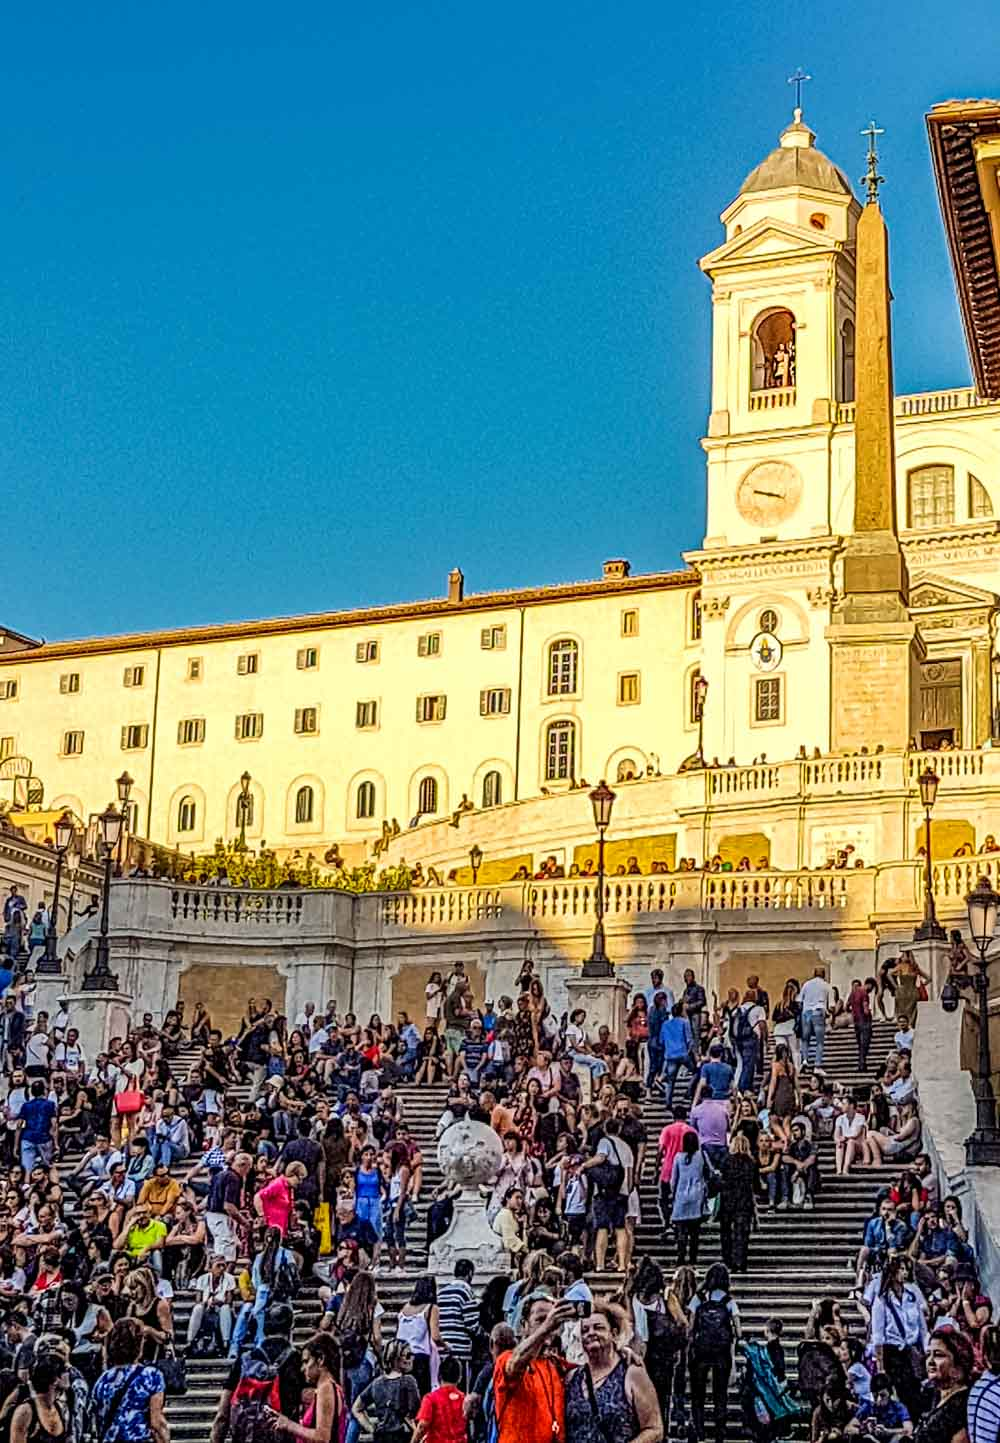 20180929_180337 The Spanish Steps, Rome (Scalinata di Trinità dei Monti)